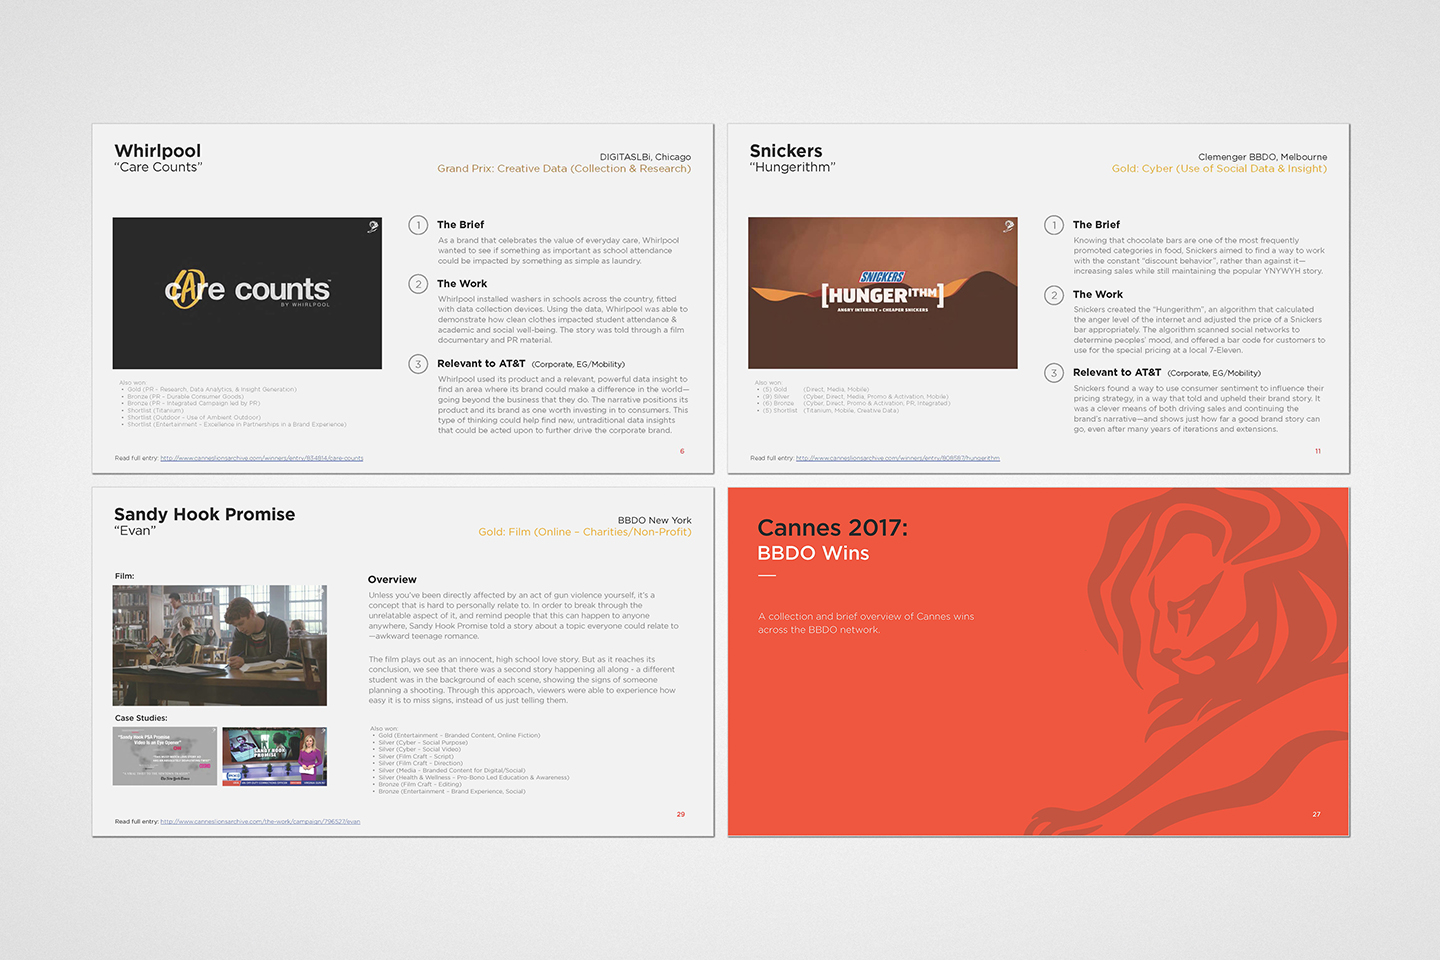 CannesLions_Overview_Layout-2-sm.jpg